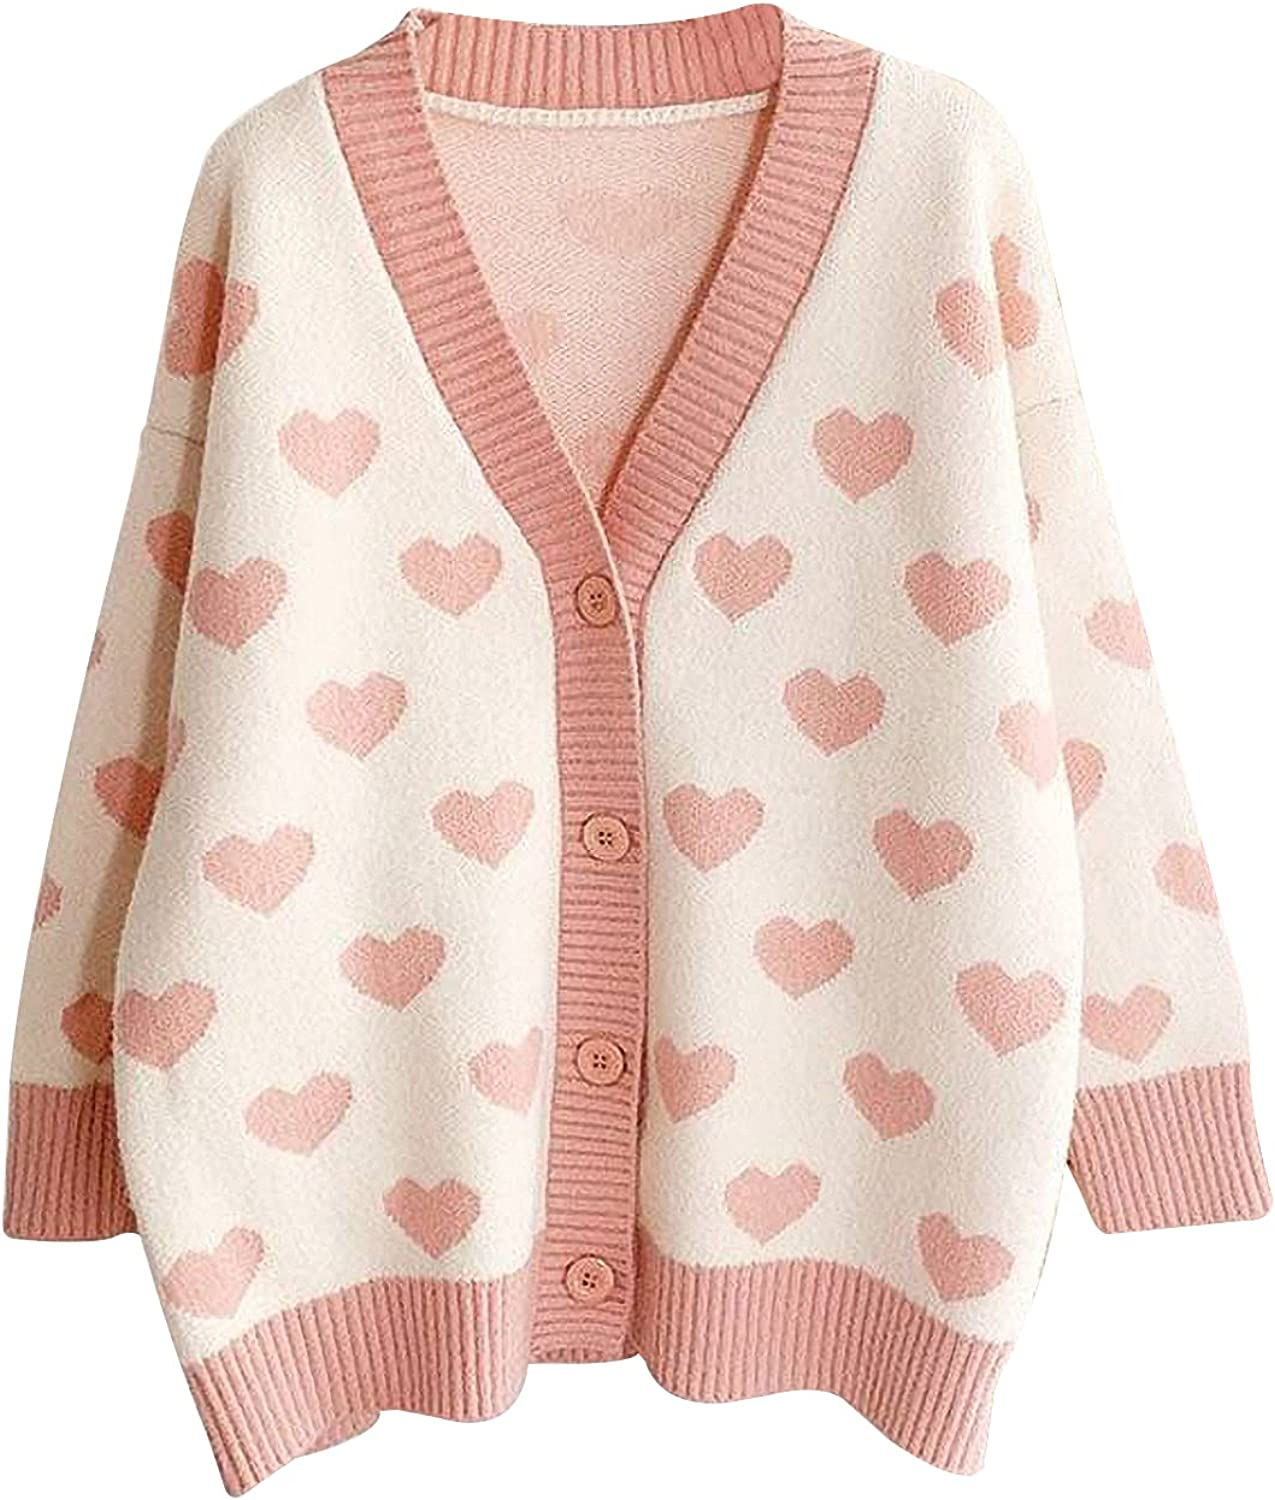 Yimoon Women's Y2K Button Down Heart Pattern Sweater Knitted V-Neck Casual Loose Cardigan